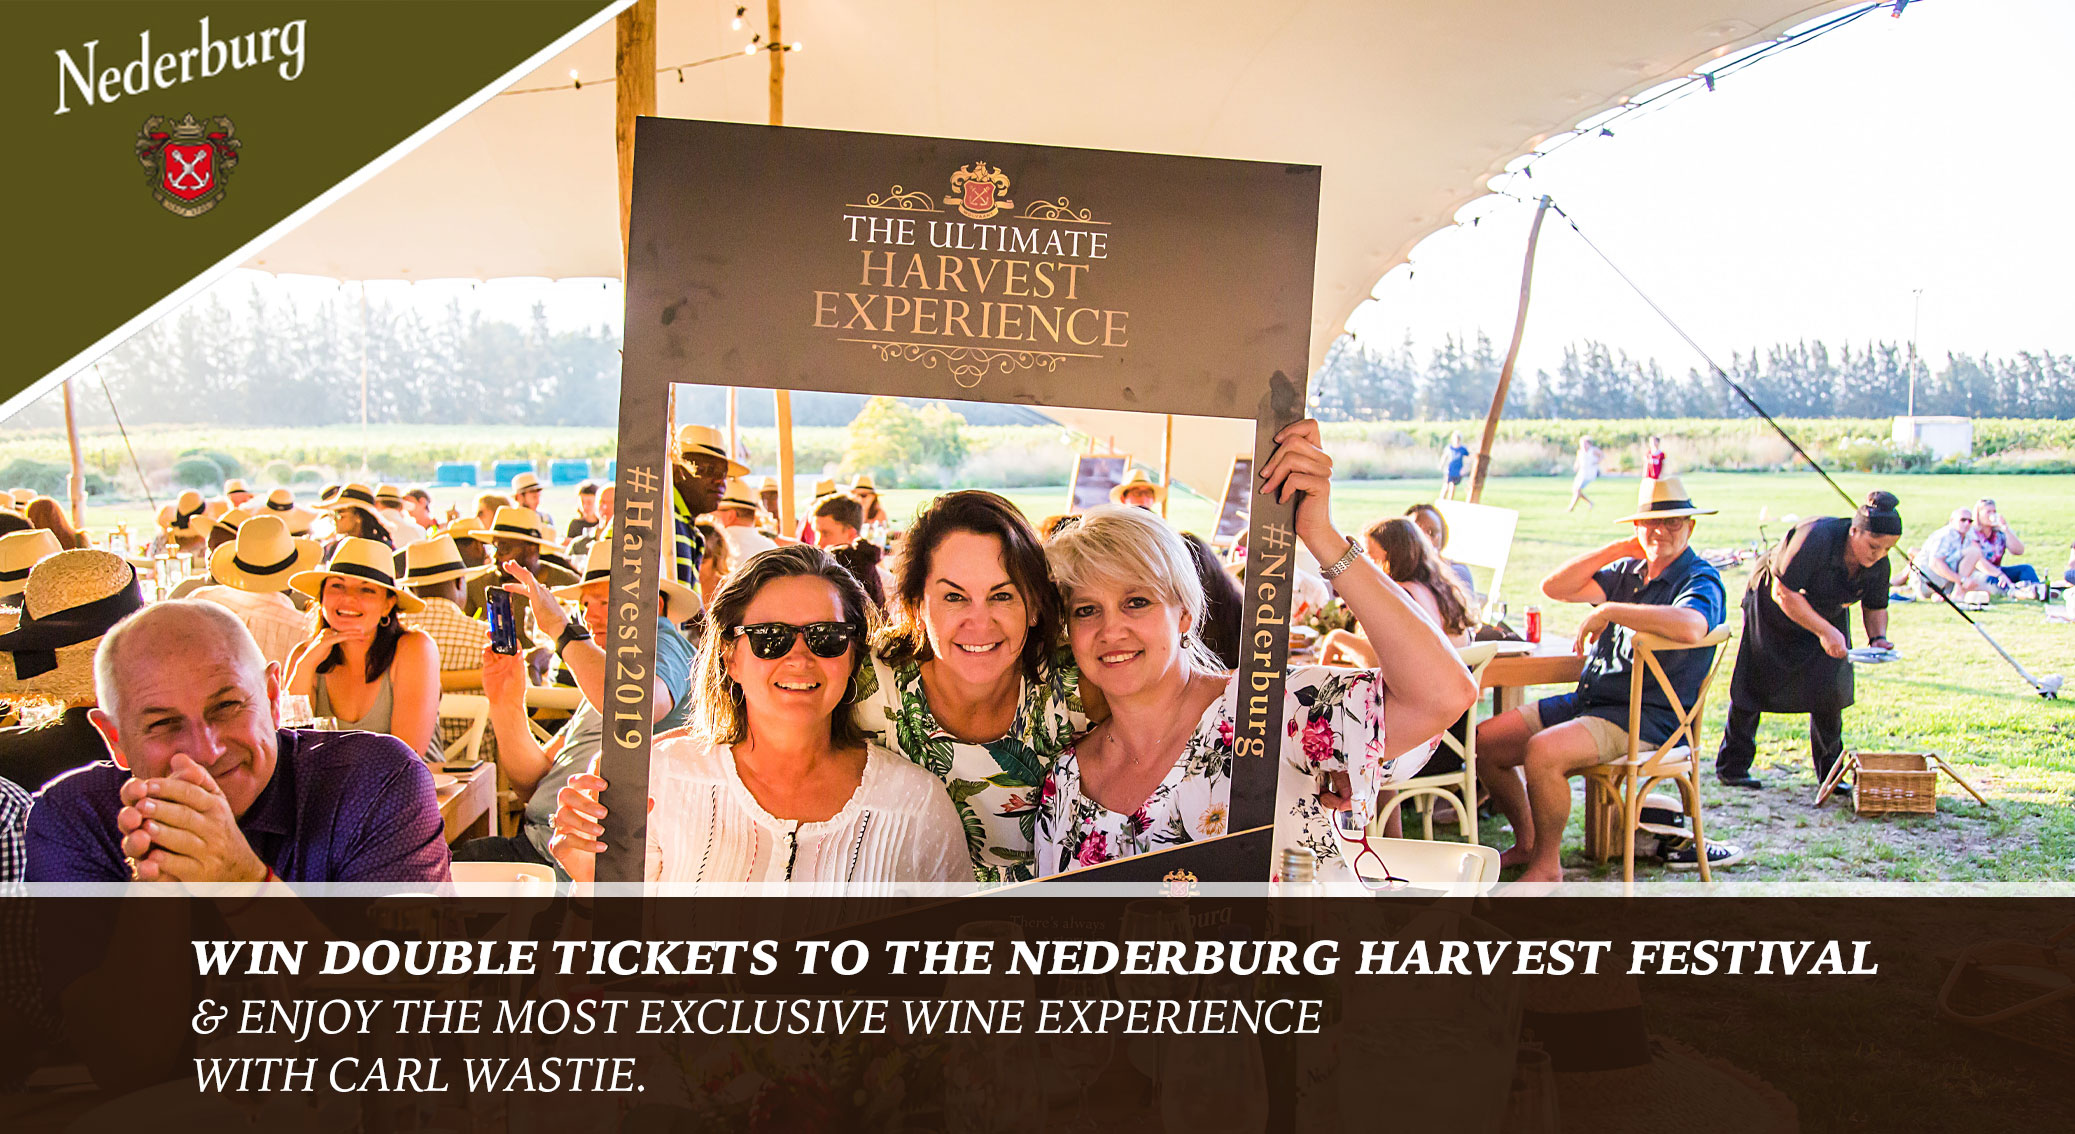 WIN an exclusive wine experience at the Nederburg Harvest Festival